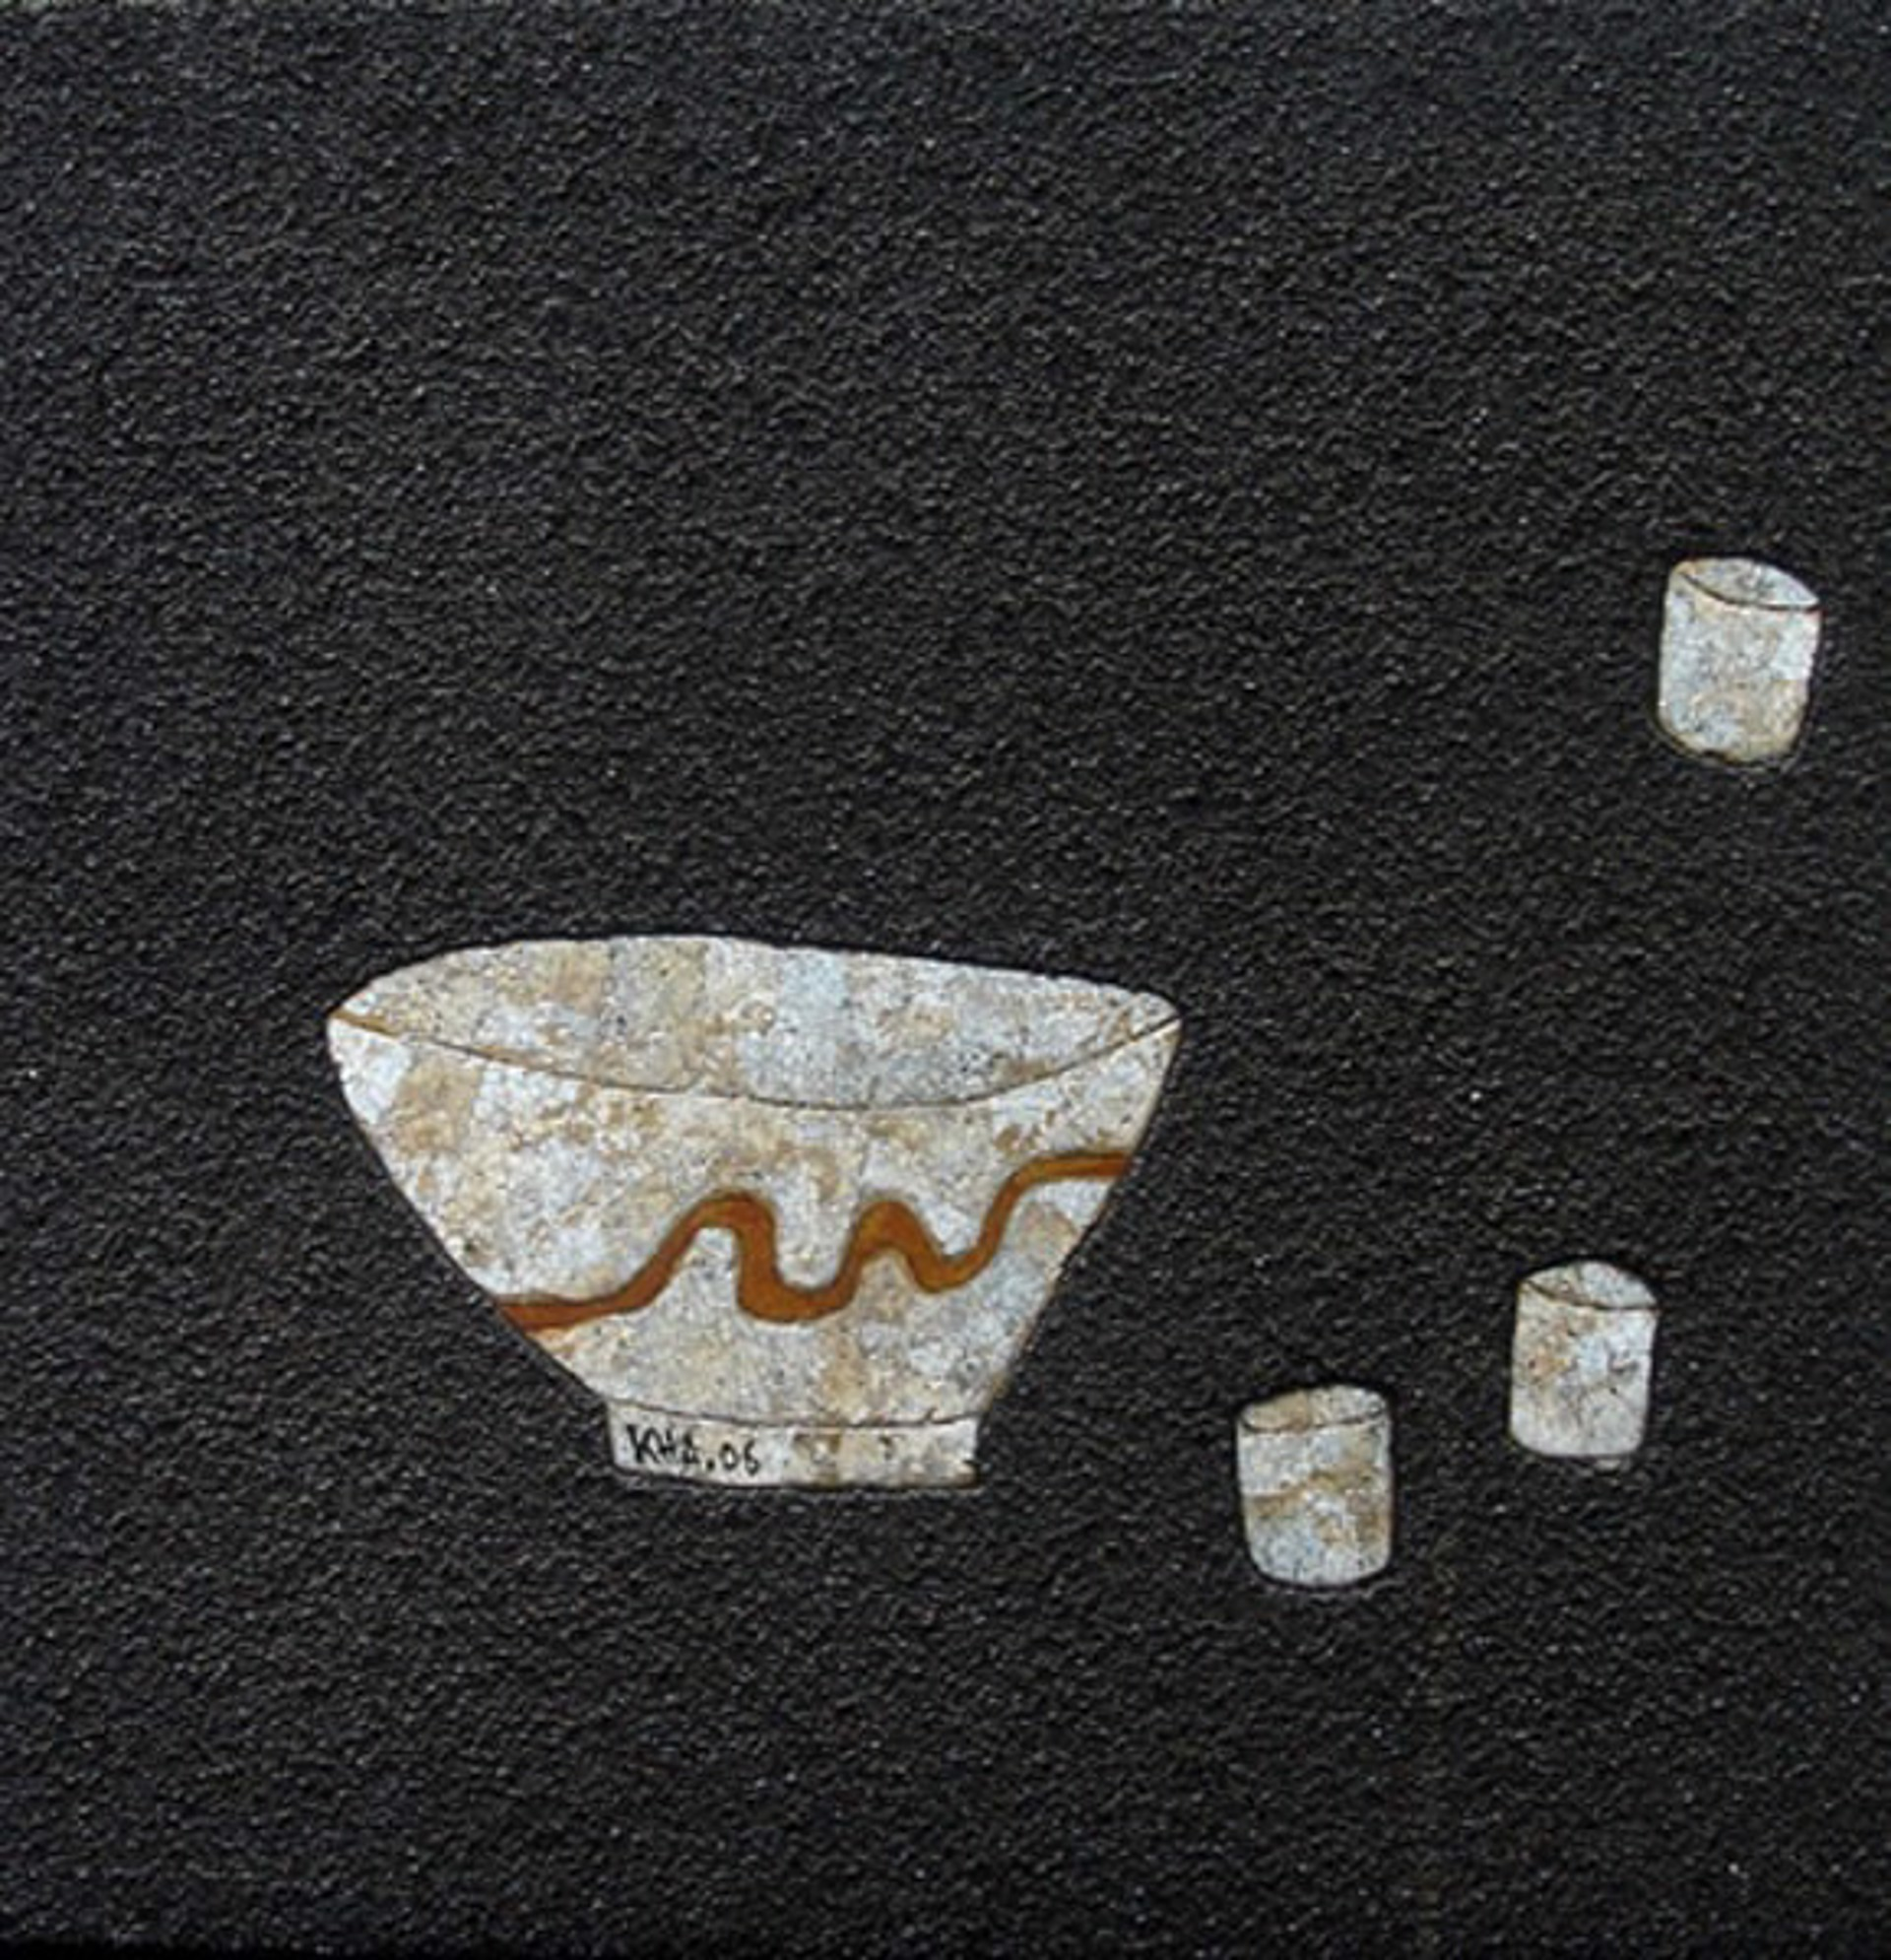 Bowl and Teacups I by Bui Cong Khanh